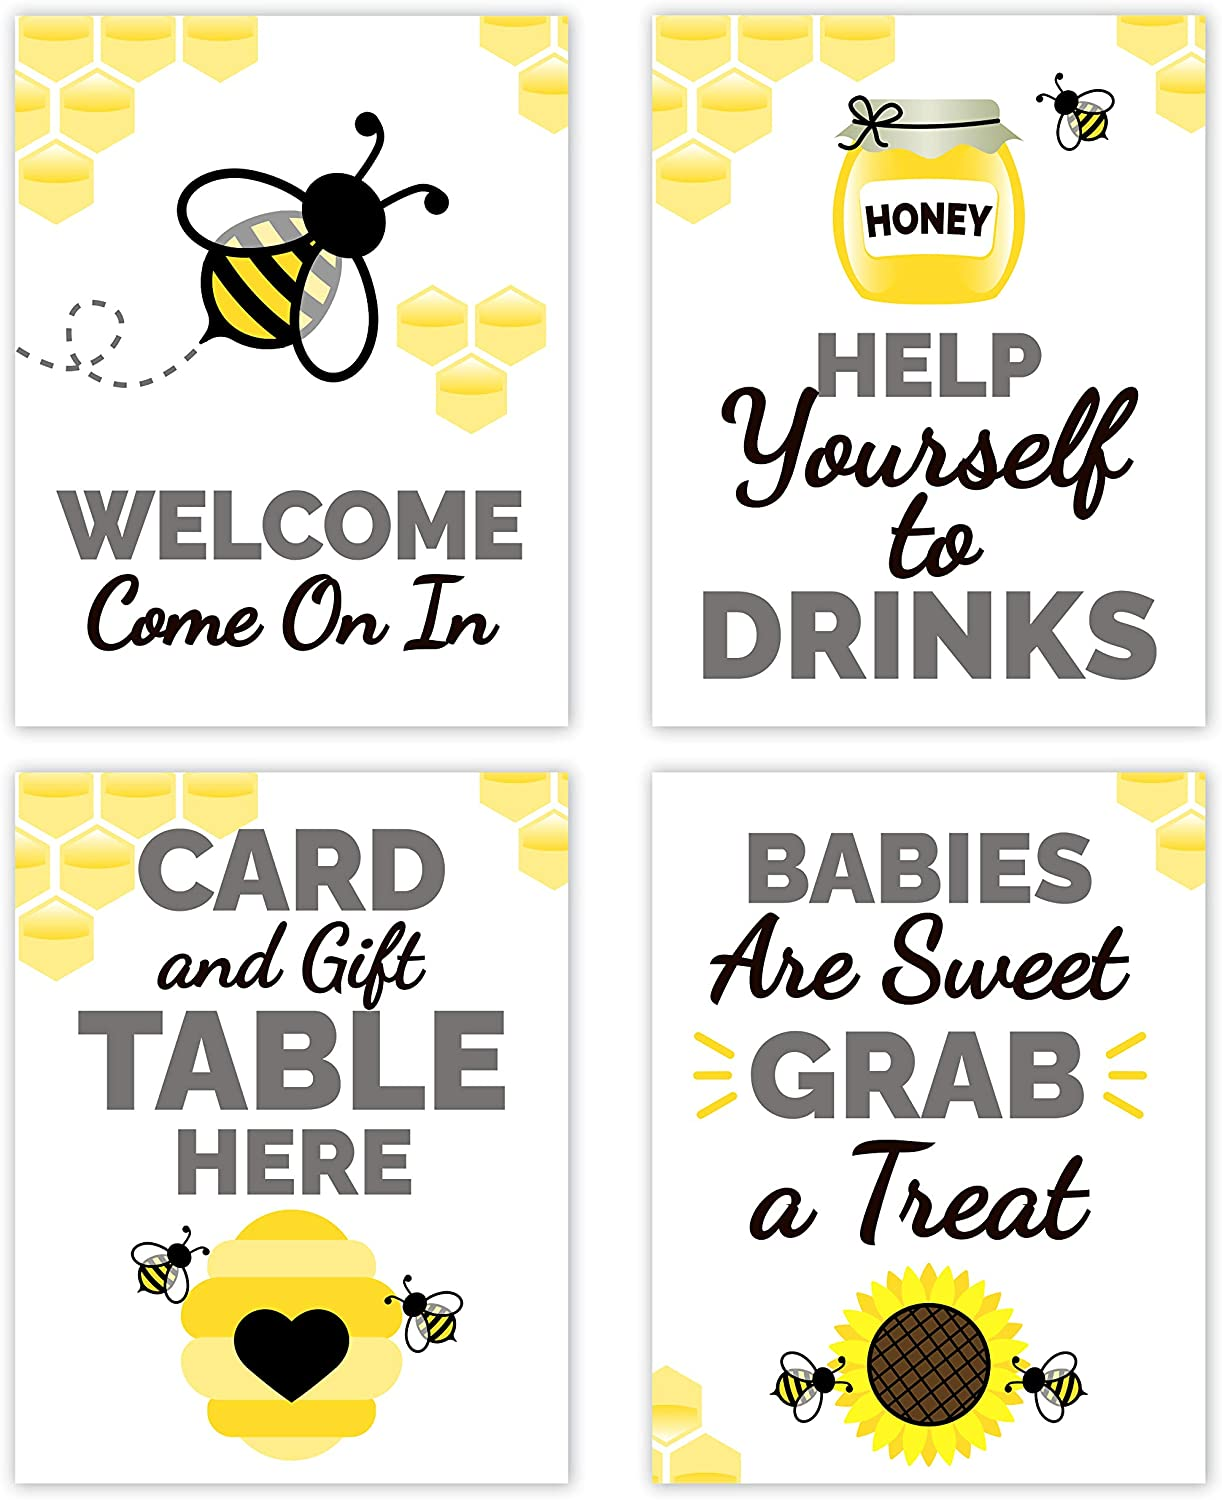 Bumble Bee Baby Shower Table Decorations Signs - Centerpiece Decor Supplies Gender Neutral